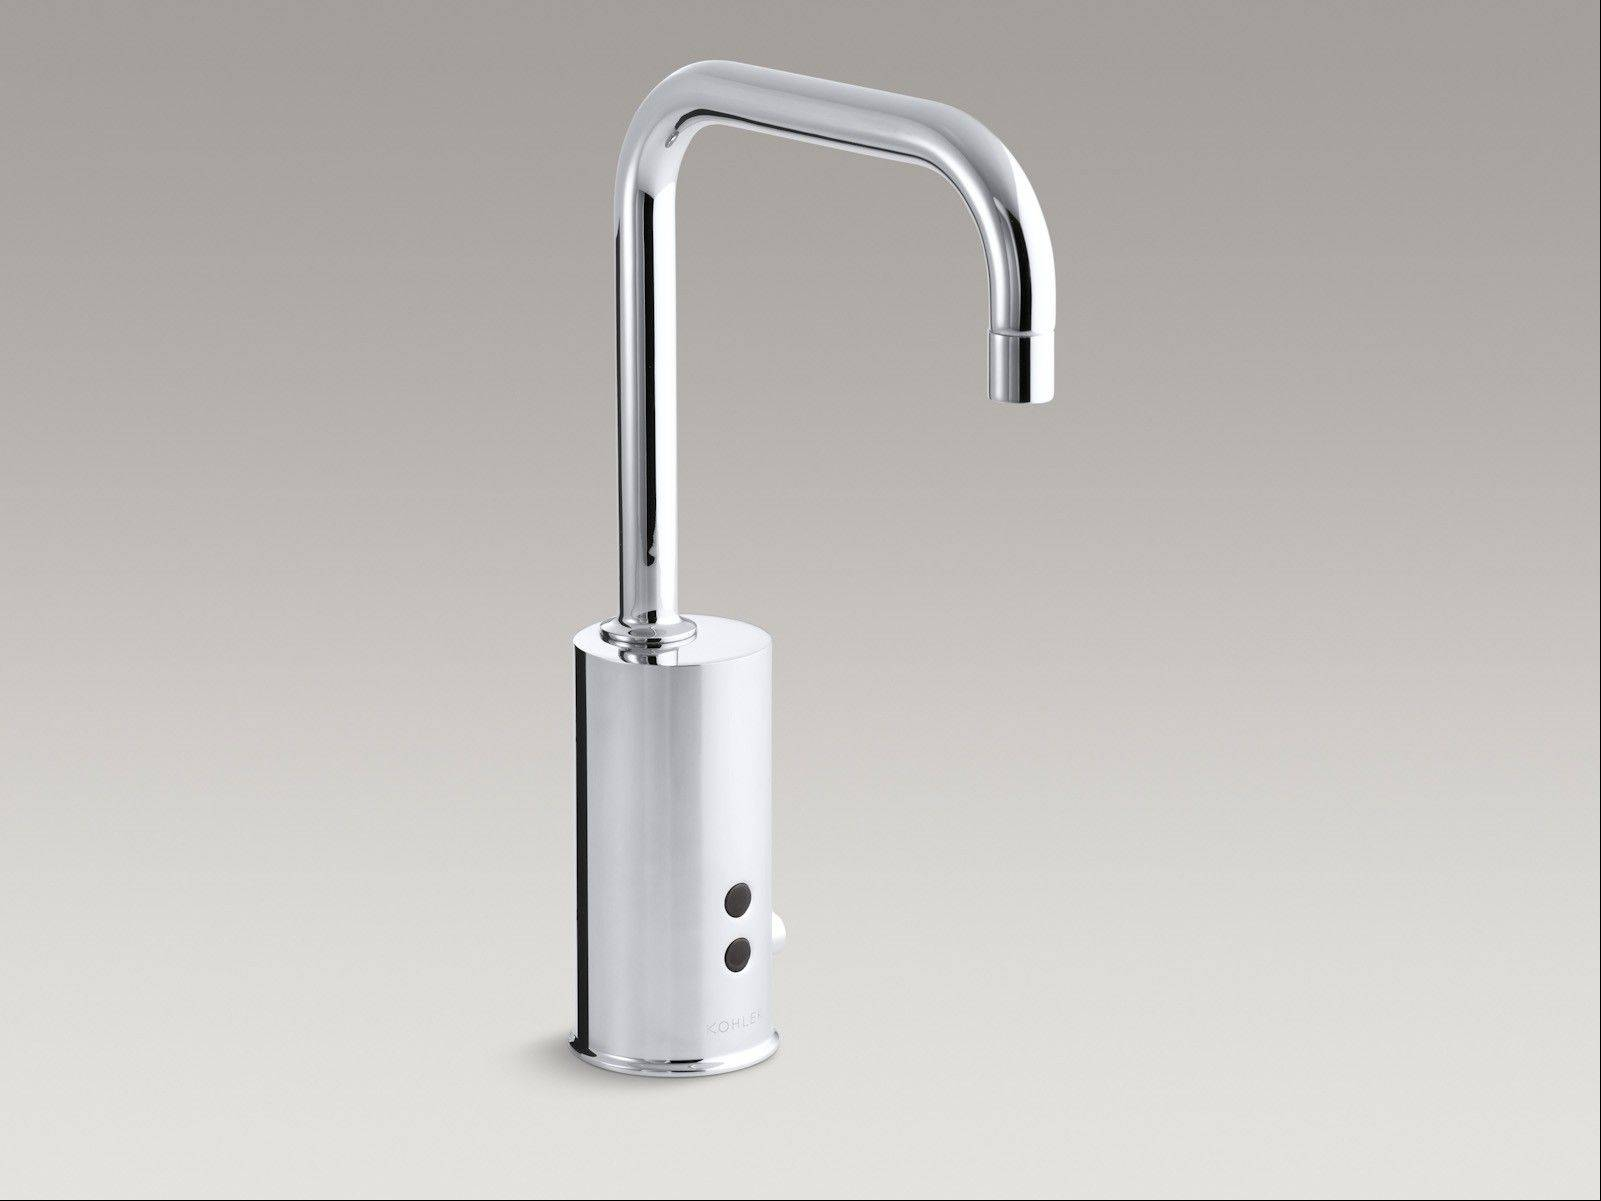 Ask The Plumber 'touchless' Kitchen Faucets Add Nice Touchrhdailyherald: Touchless Kitchen Faucet At Home Improvement Advice